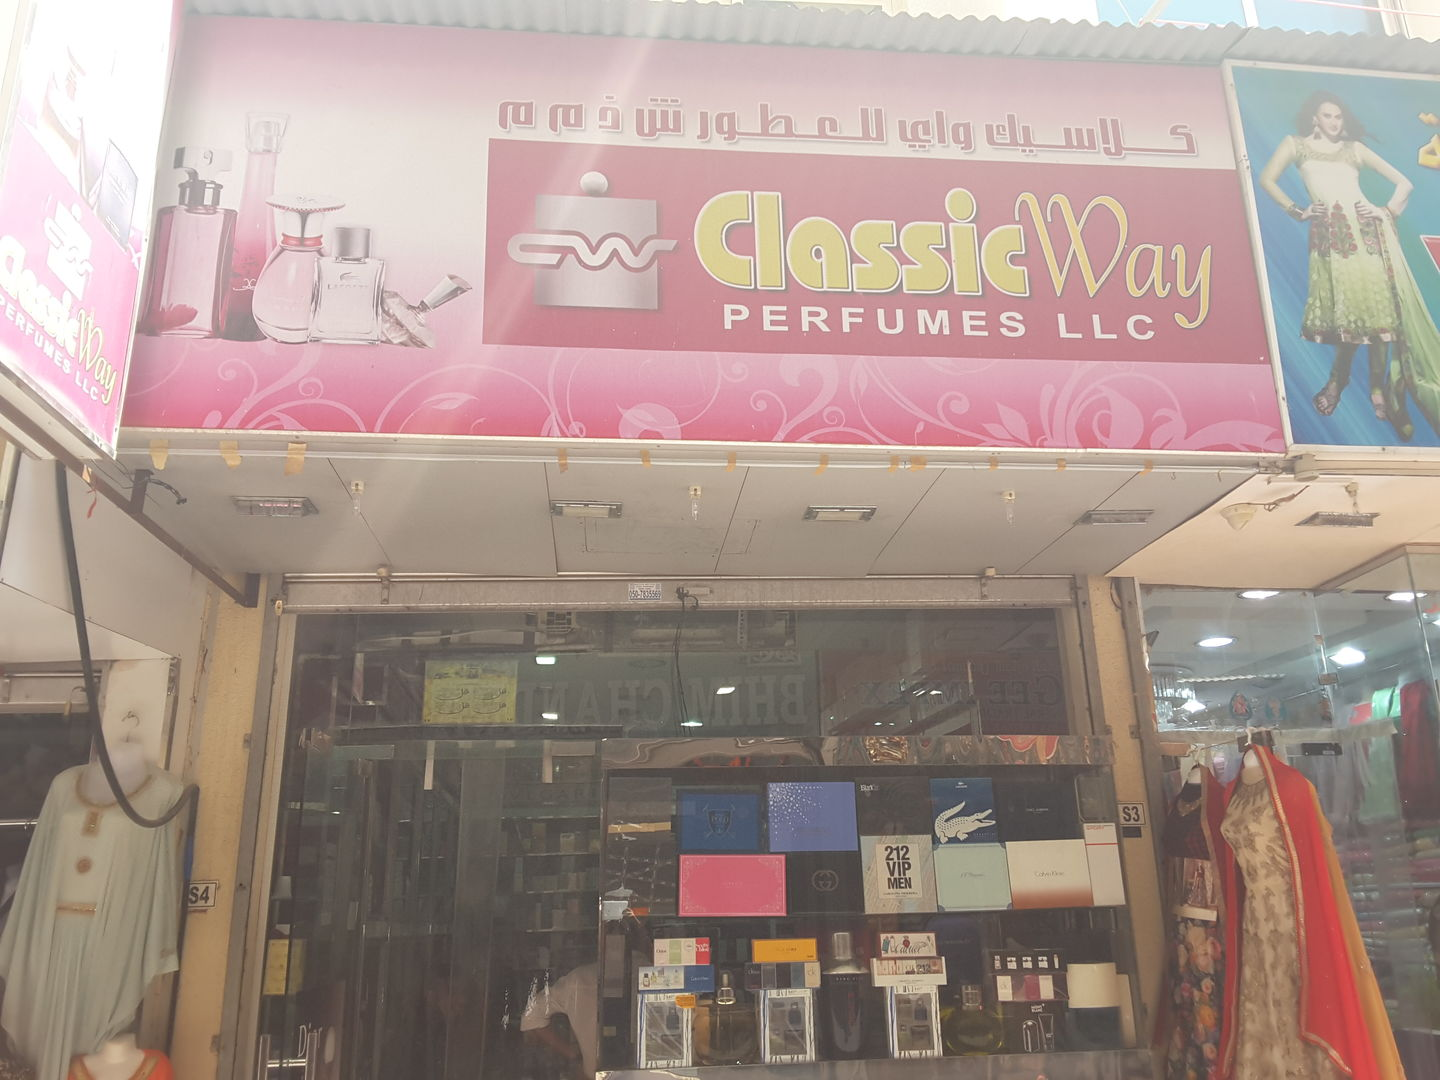 HiDubai-business-classic-way-chocolate-trading-shopping-beauty-cosmetics-stores-meena-bazar-al-souq-al-kabeer-dubai